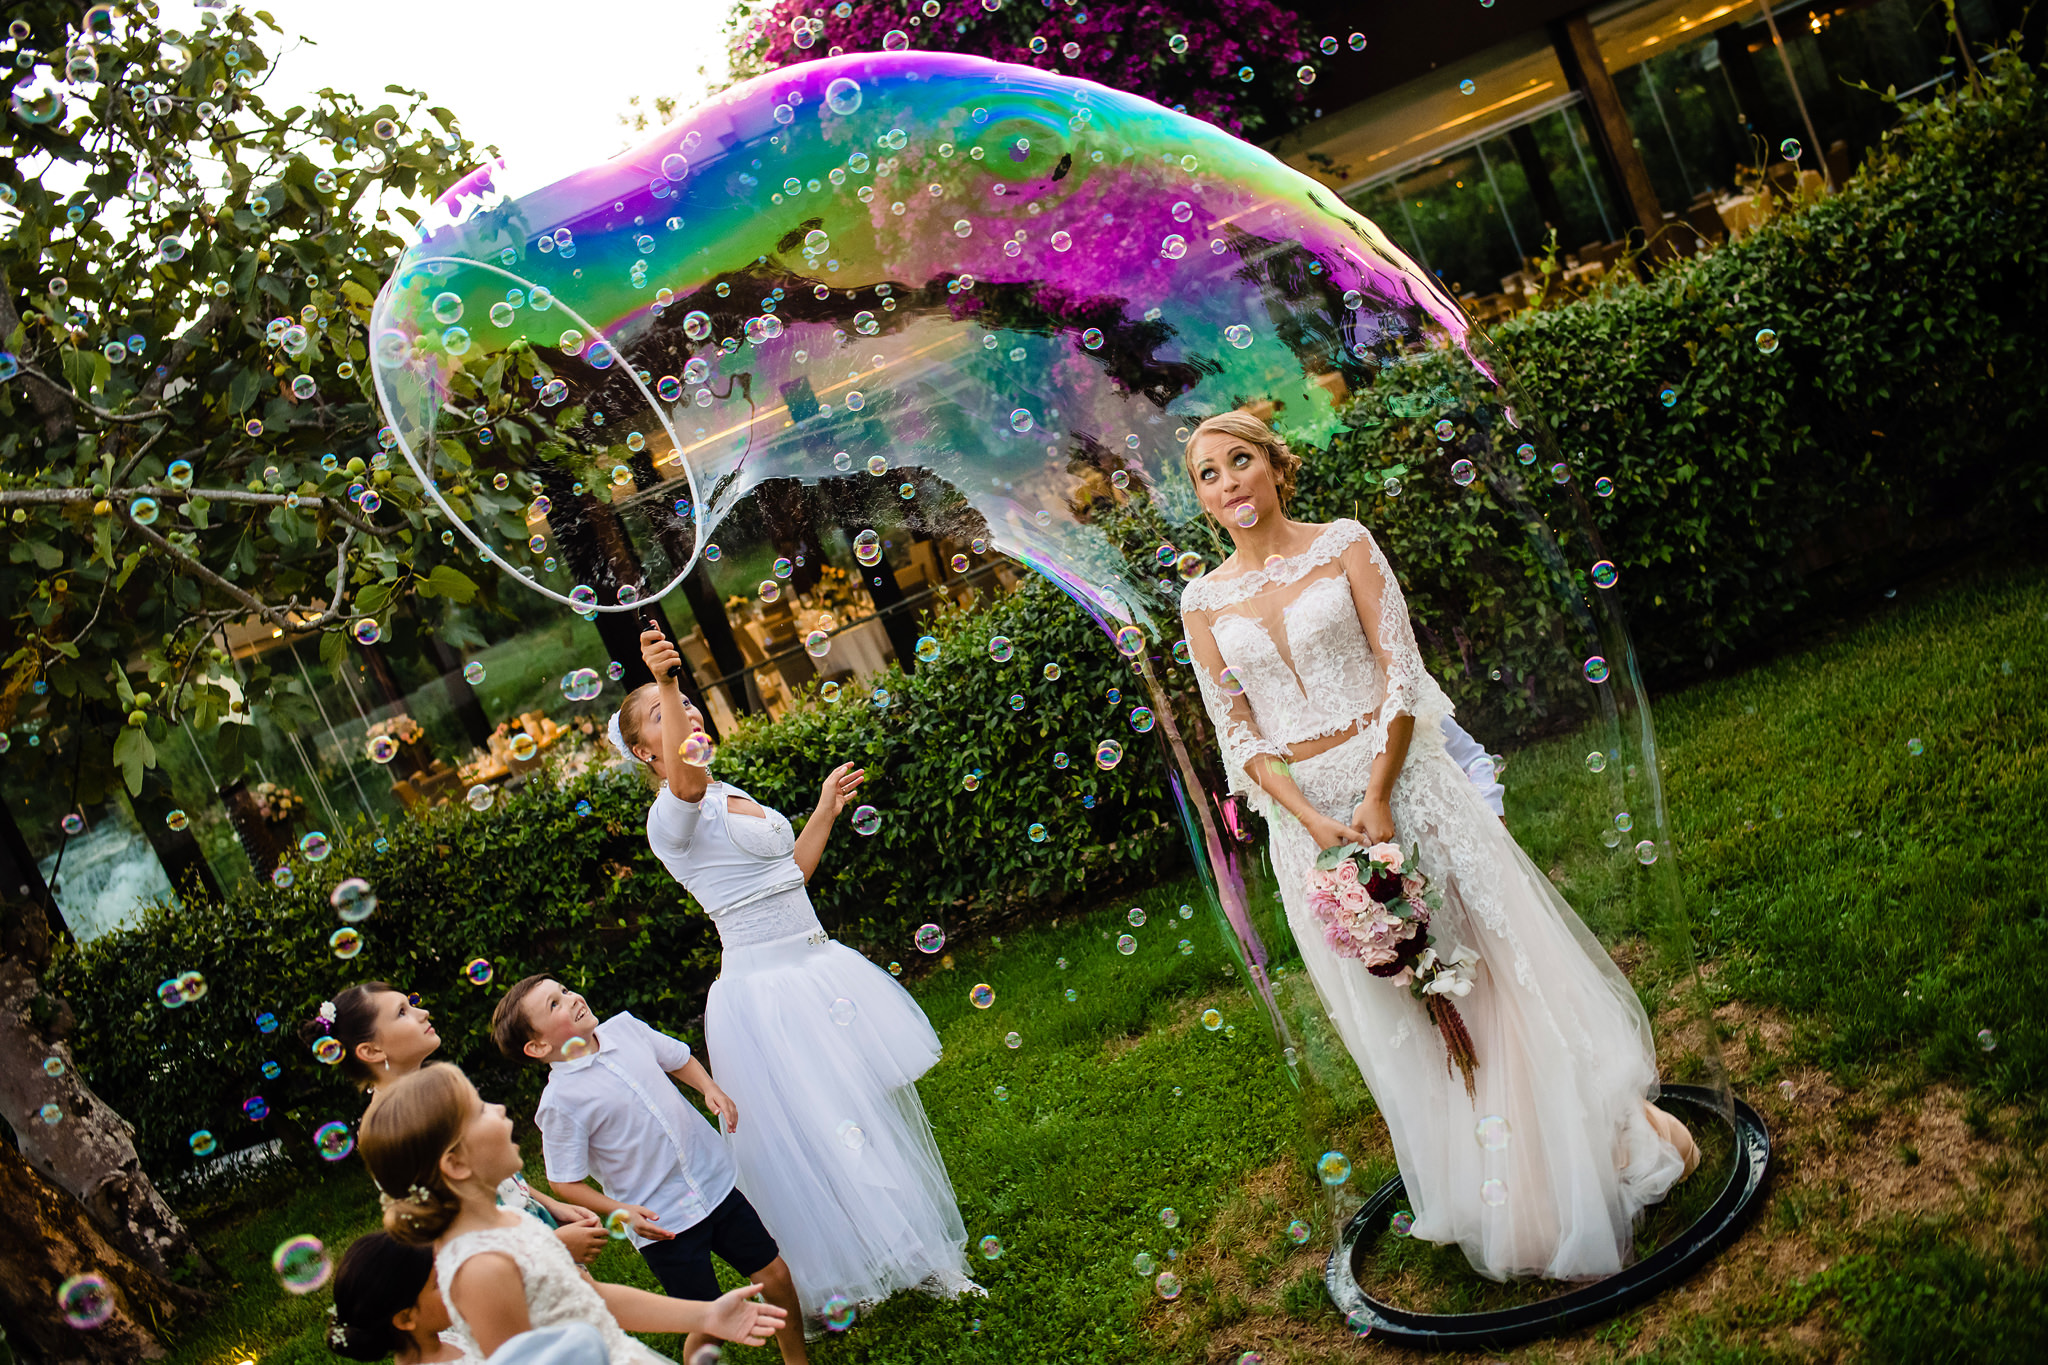 Bride surrounded by rainbow bubble - photo by Rich Howman